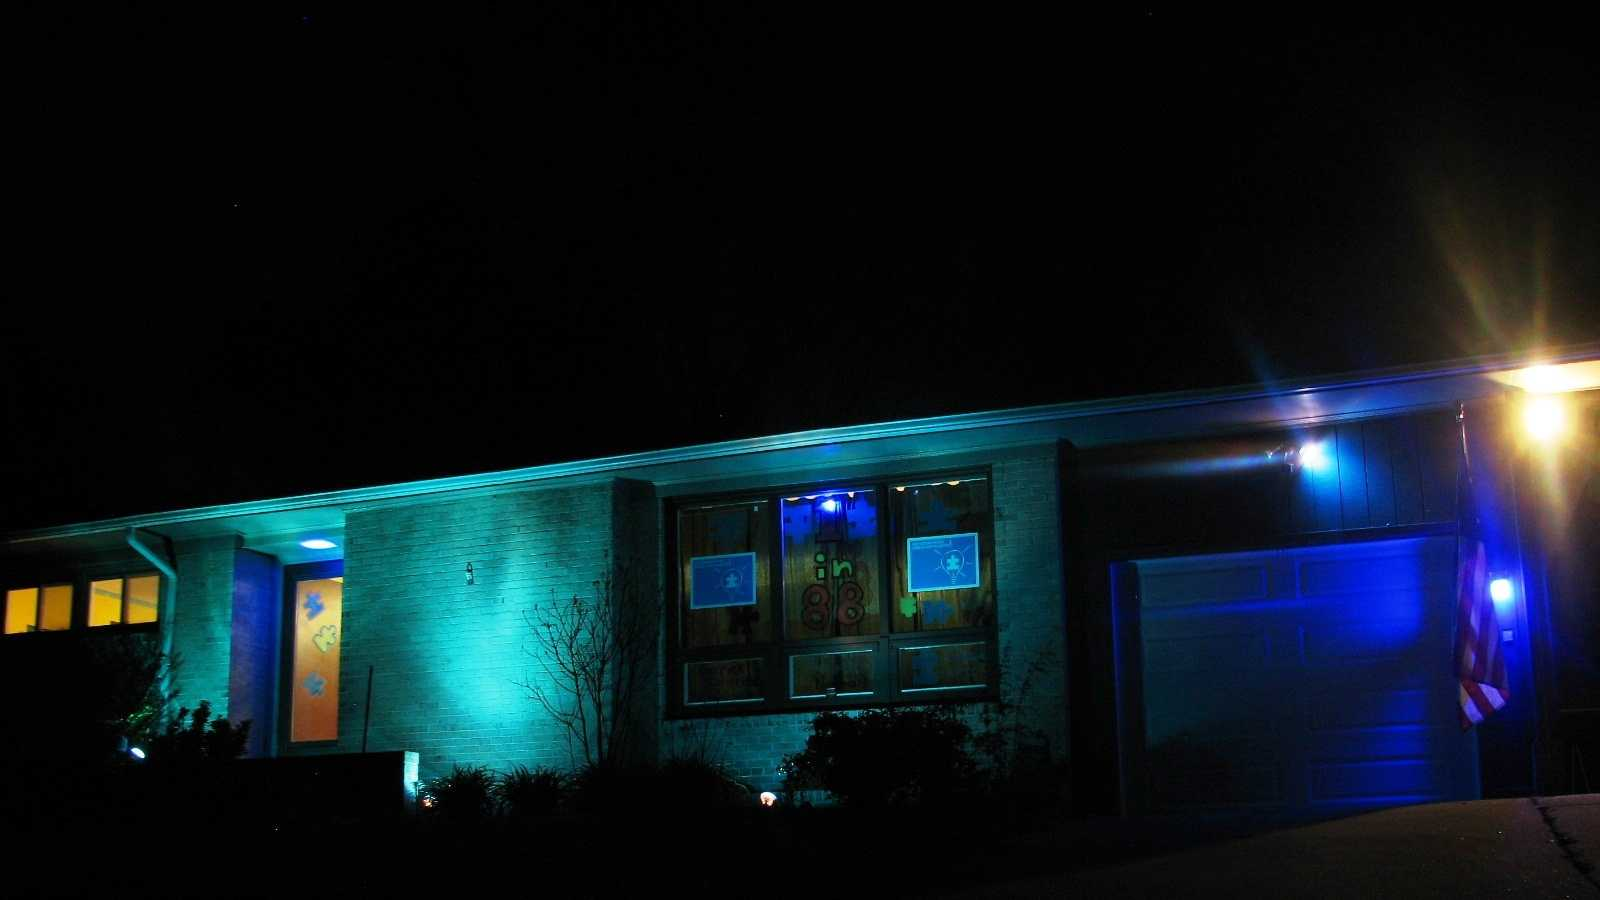 The Howle family home has blue lights on display as part of April's Autism Awareness Month